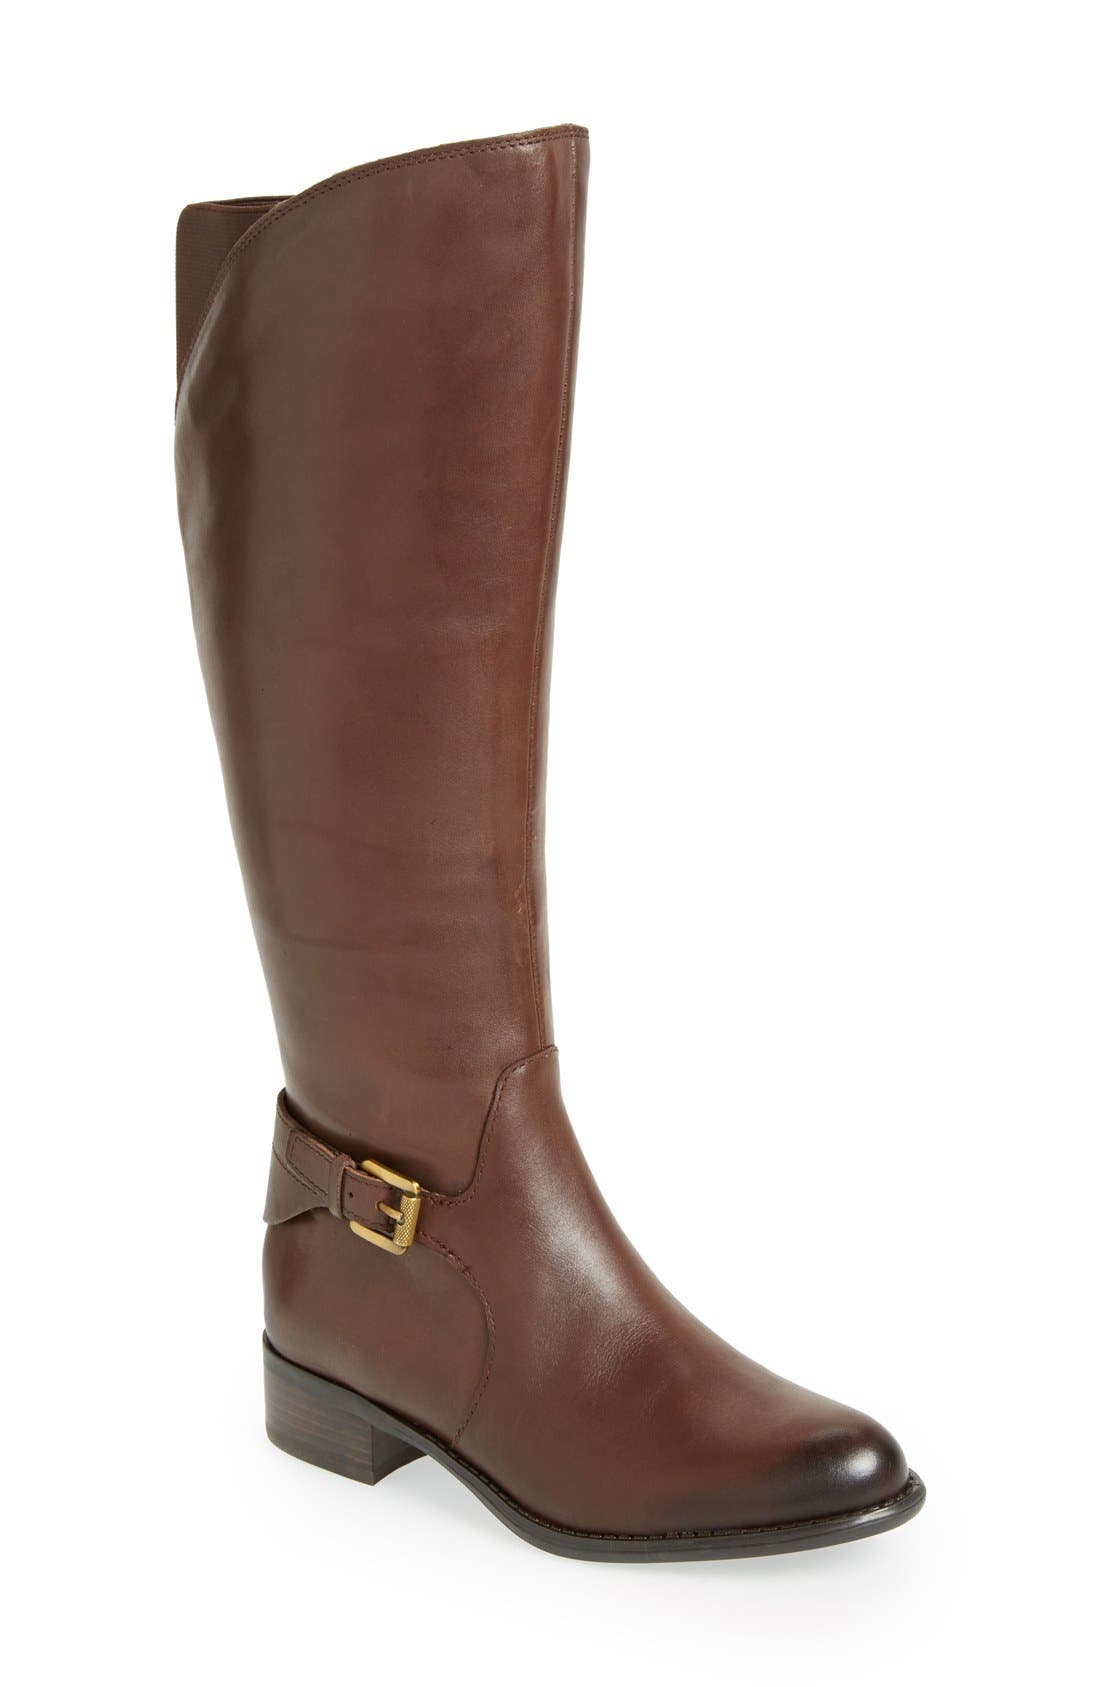 Main Image - Franco Sarto 'Craze' Knee High Leather Boot (Women)